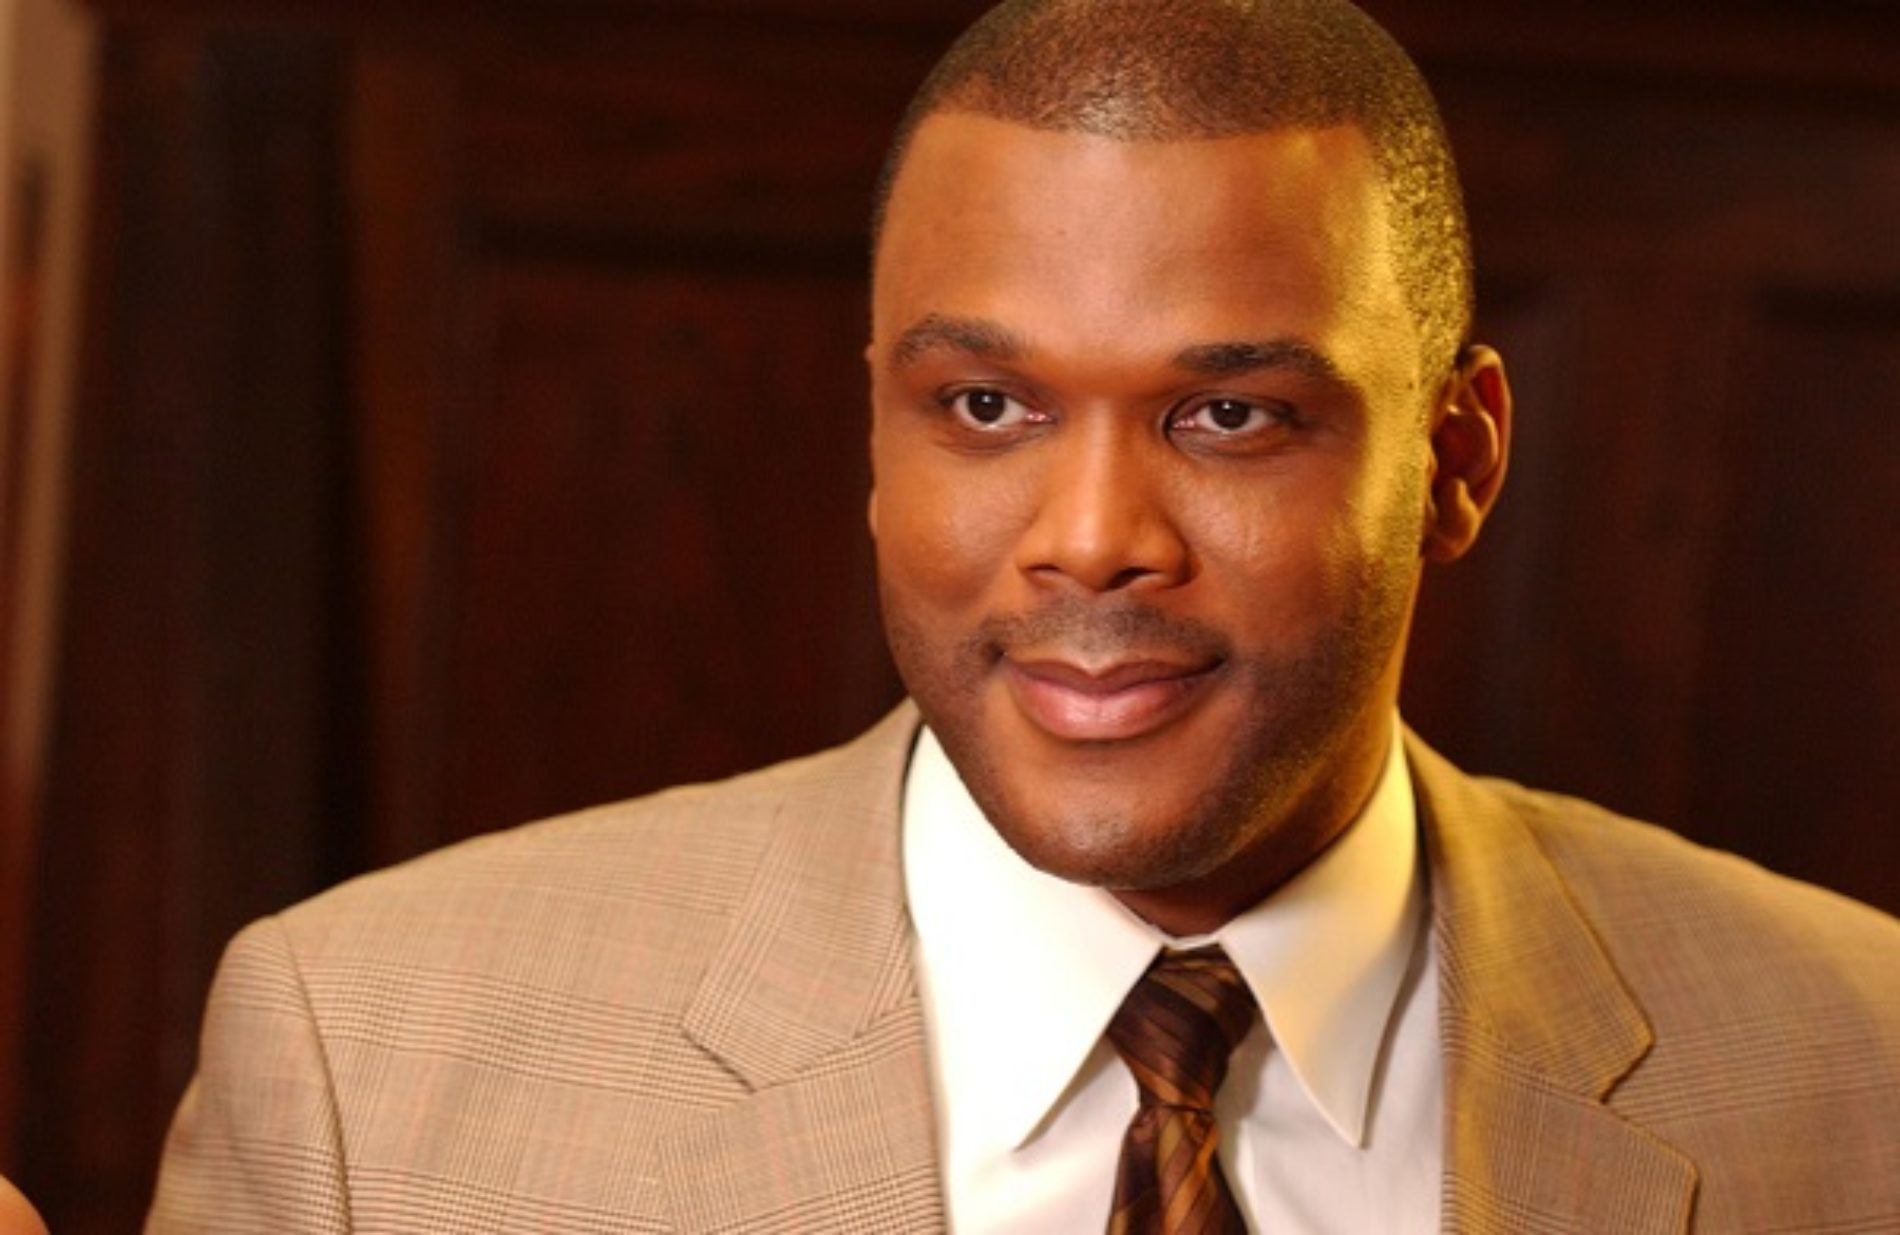 Tyler Perry confirms he and girlfriend are having a baby